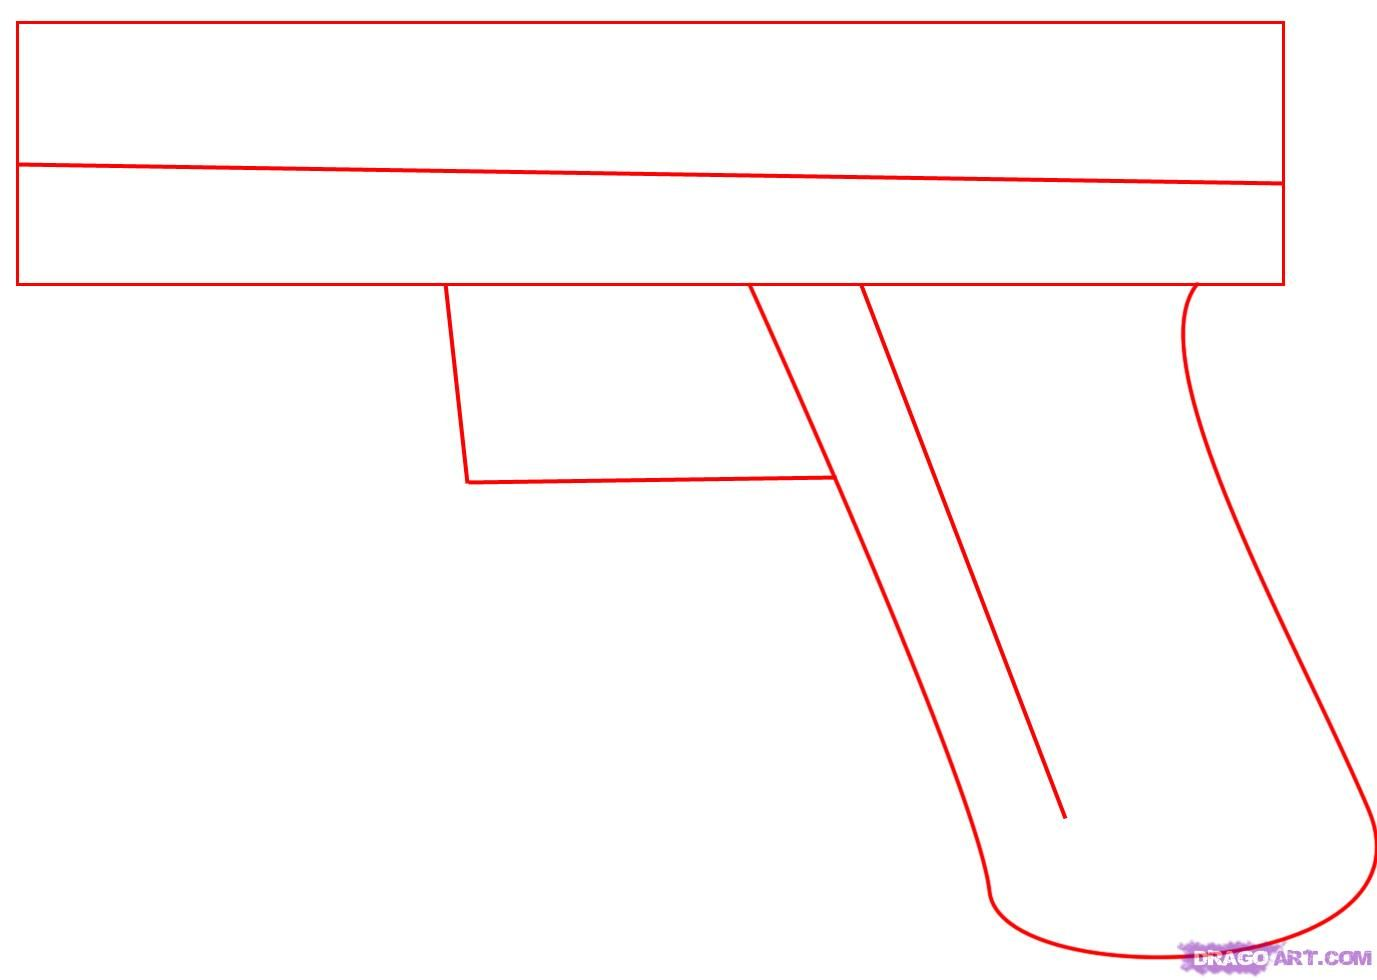 How To Draw Anime Weapons  How To Draw A Glock 17 9mm Hand Gun Step